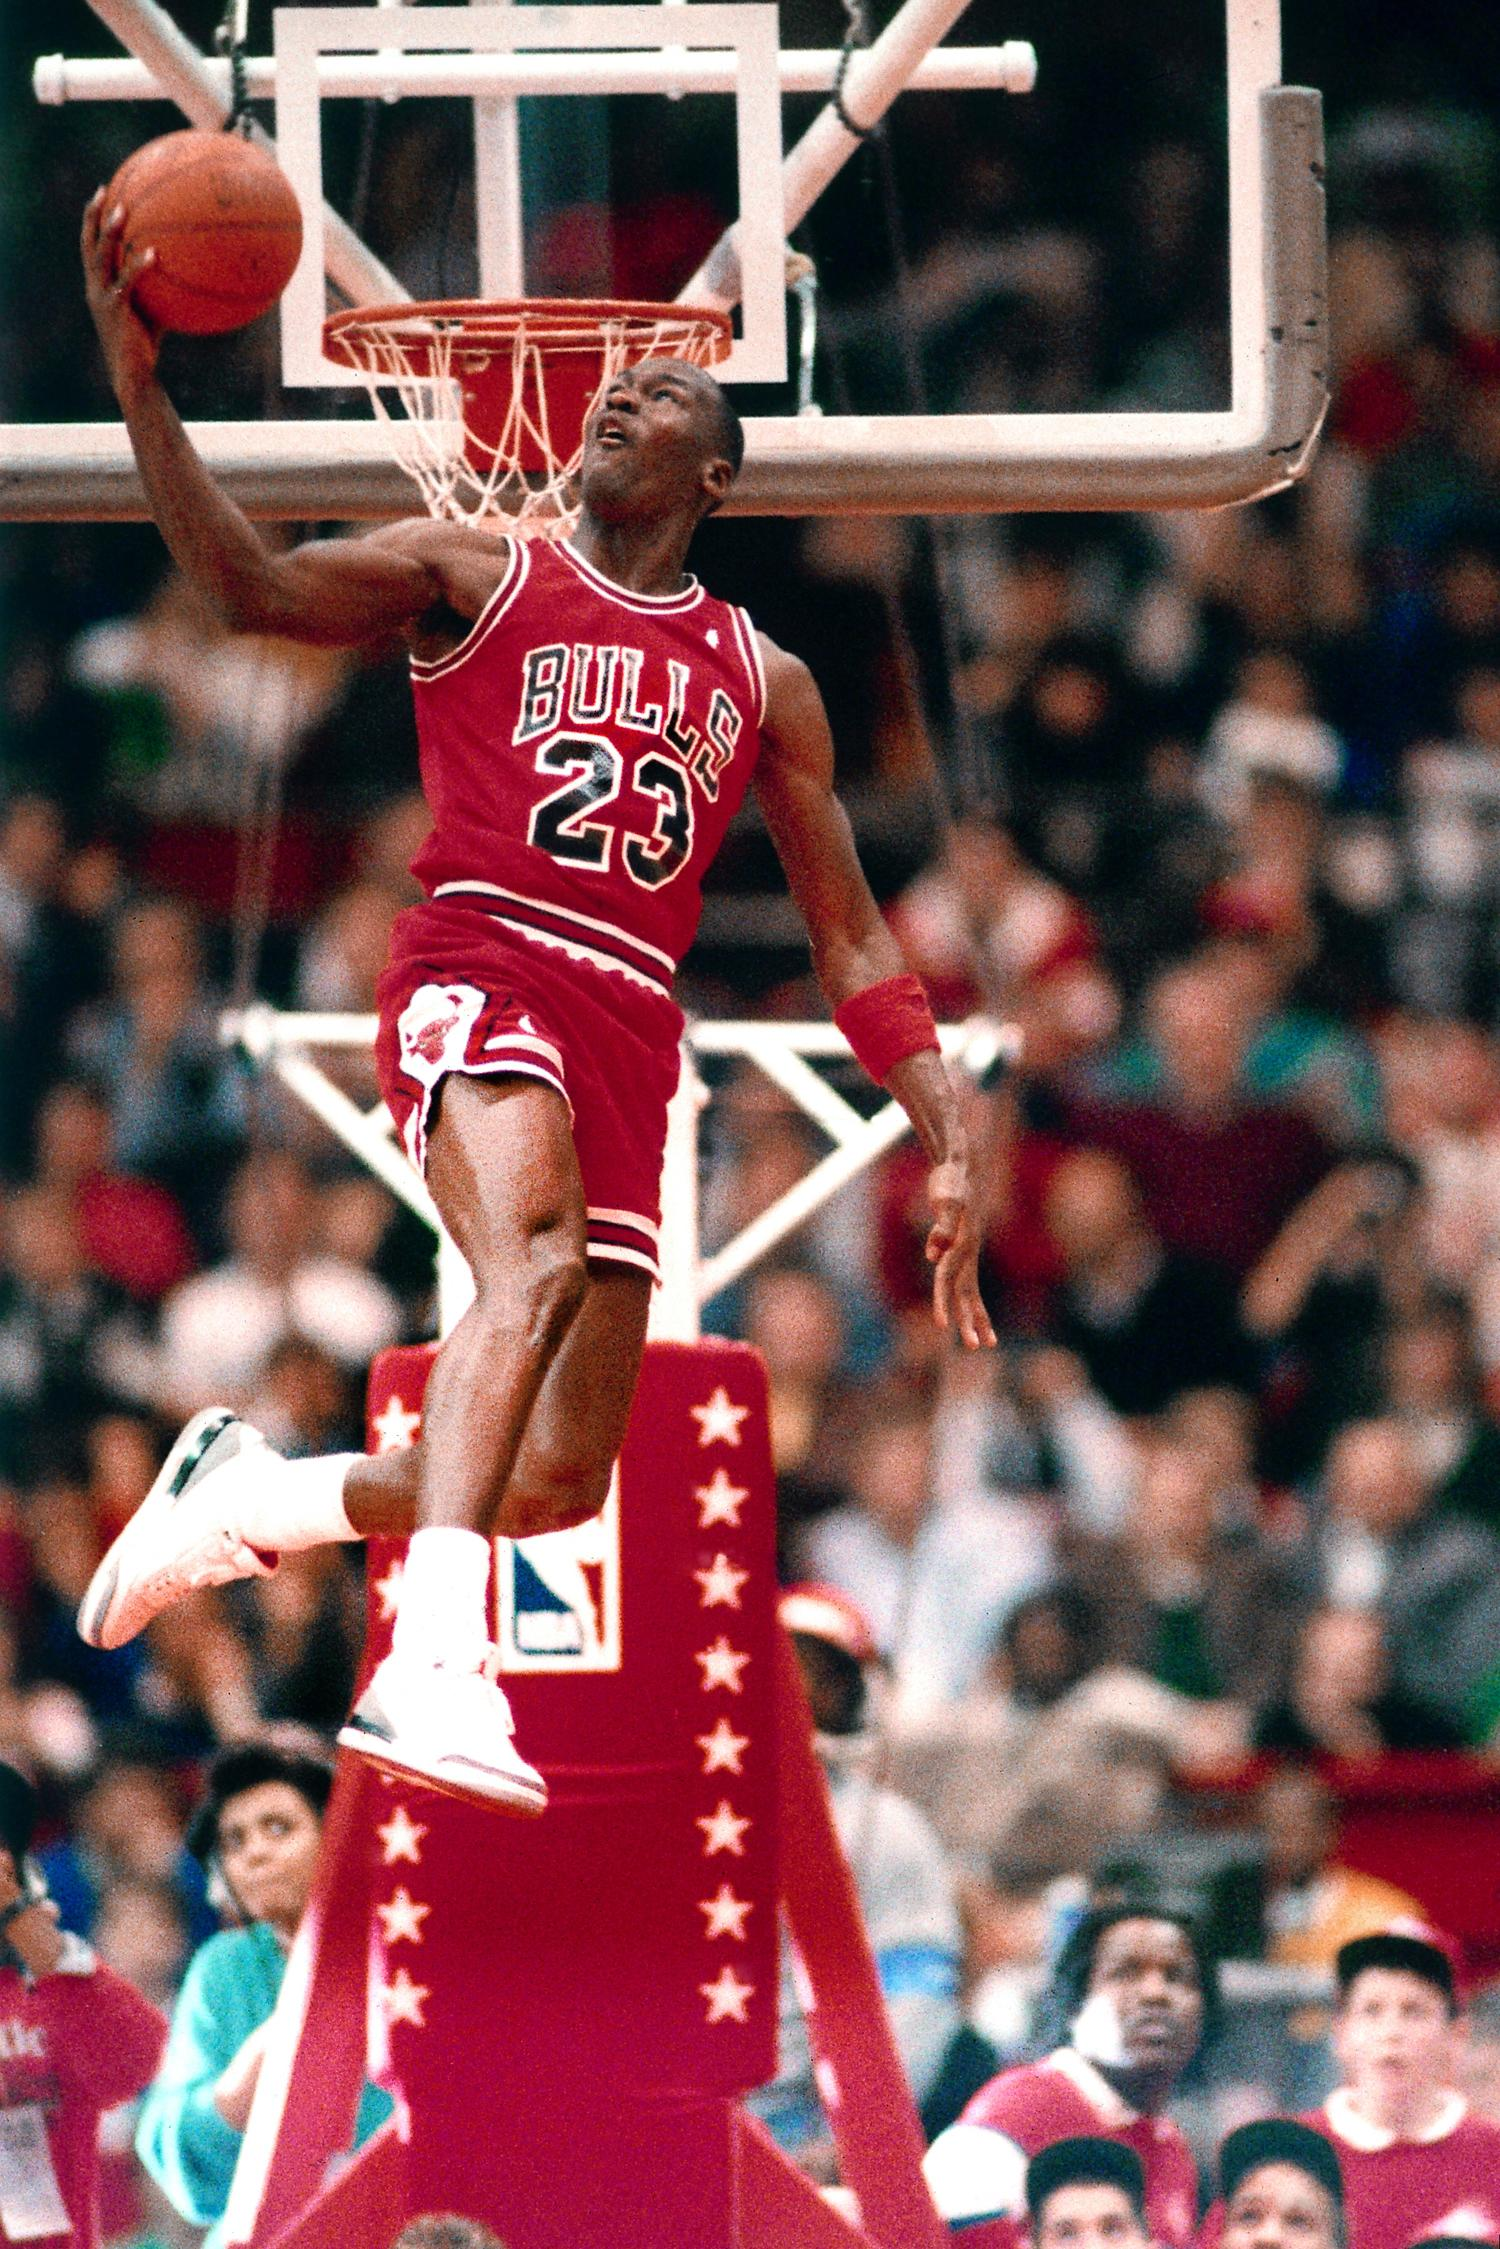 michael jordan the greatest of all time in basketball Why michael jordan is the greatest nba player  who do you think is the greatest basketball player of all time  michael jordan is the greatest of all time,.